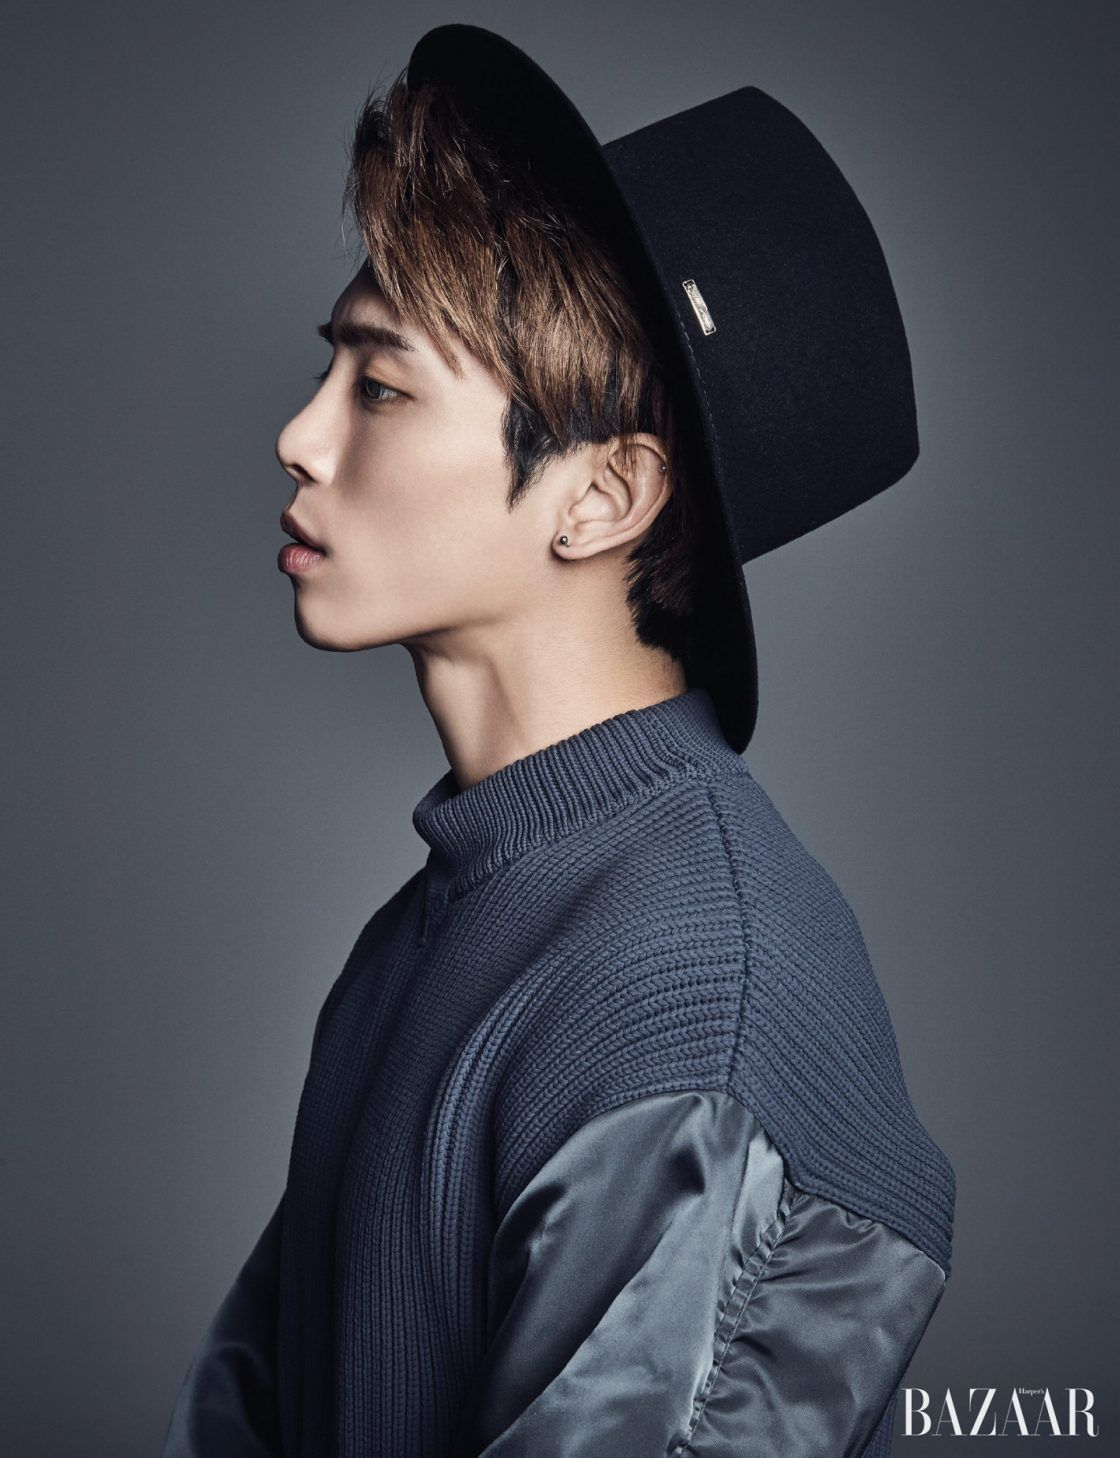 kim jong hyun of shinee he 39 s such an amazing talented person every time i hear. Black Bedroom Furniture Sets. Home Design Ideas